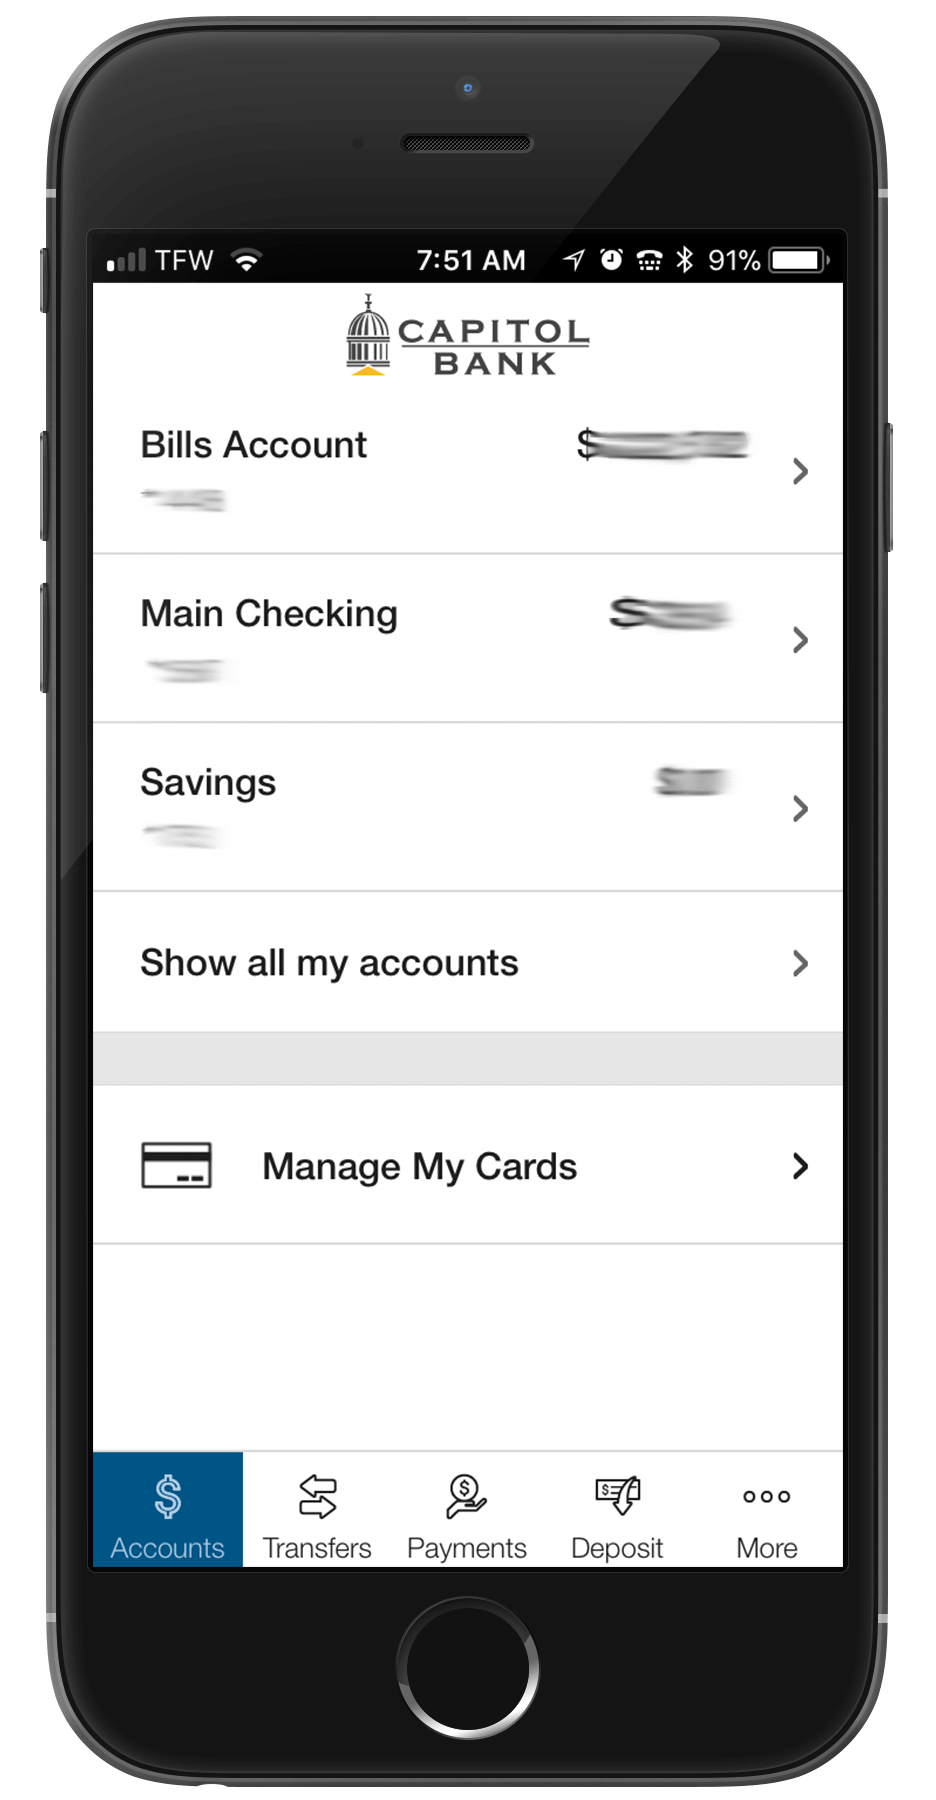 Access Card Manager from the main Account View Page